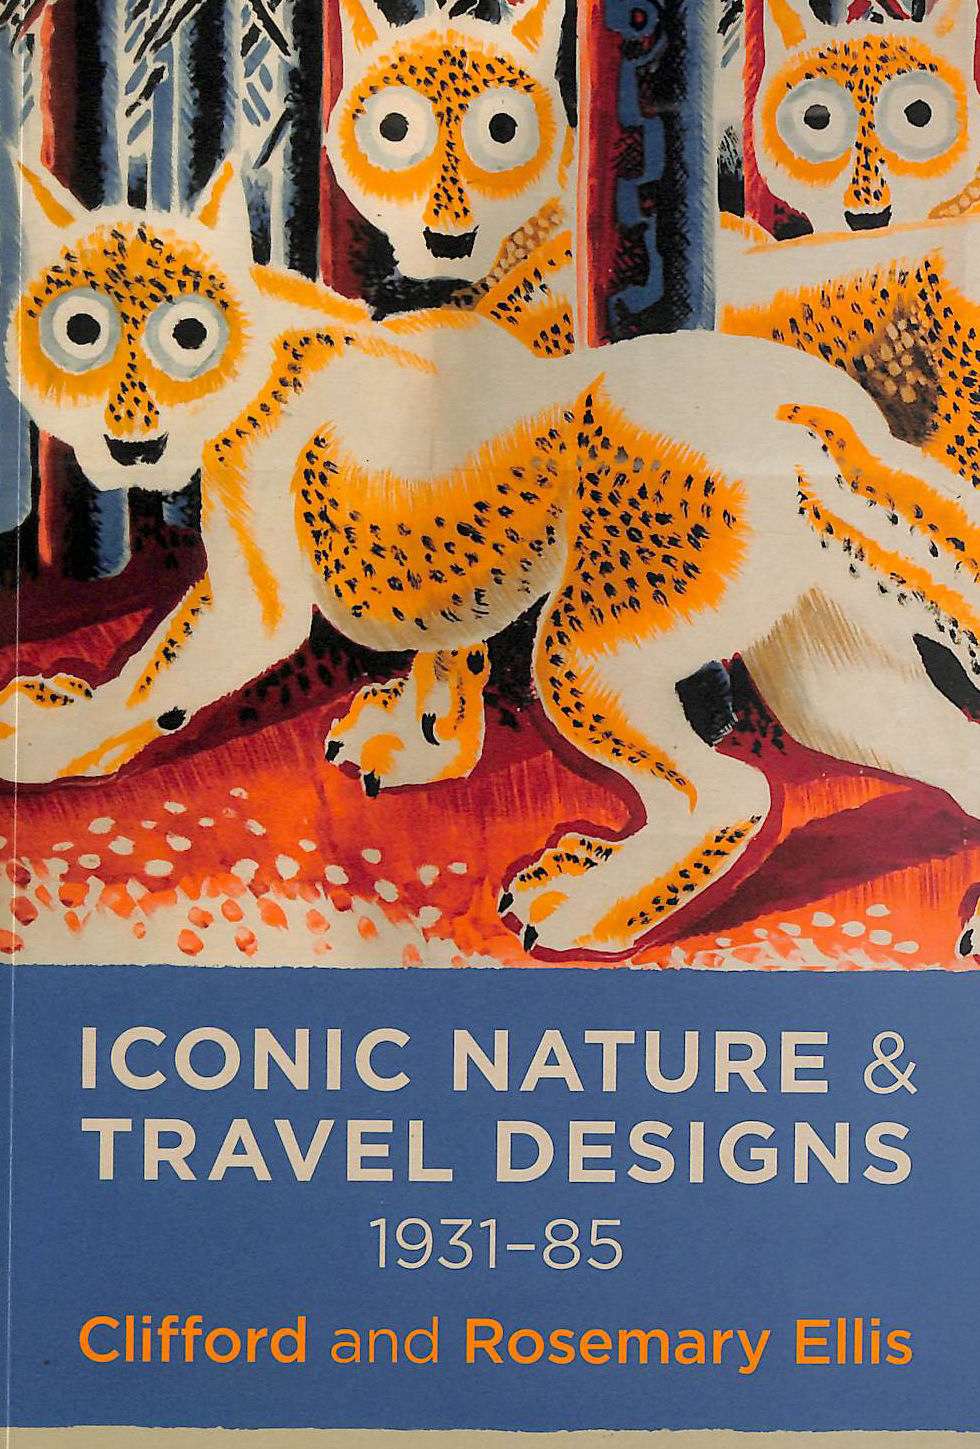 Image for Iconic Nature and Travel Designs 1931-85: Clifford and Rosemary Ellis